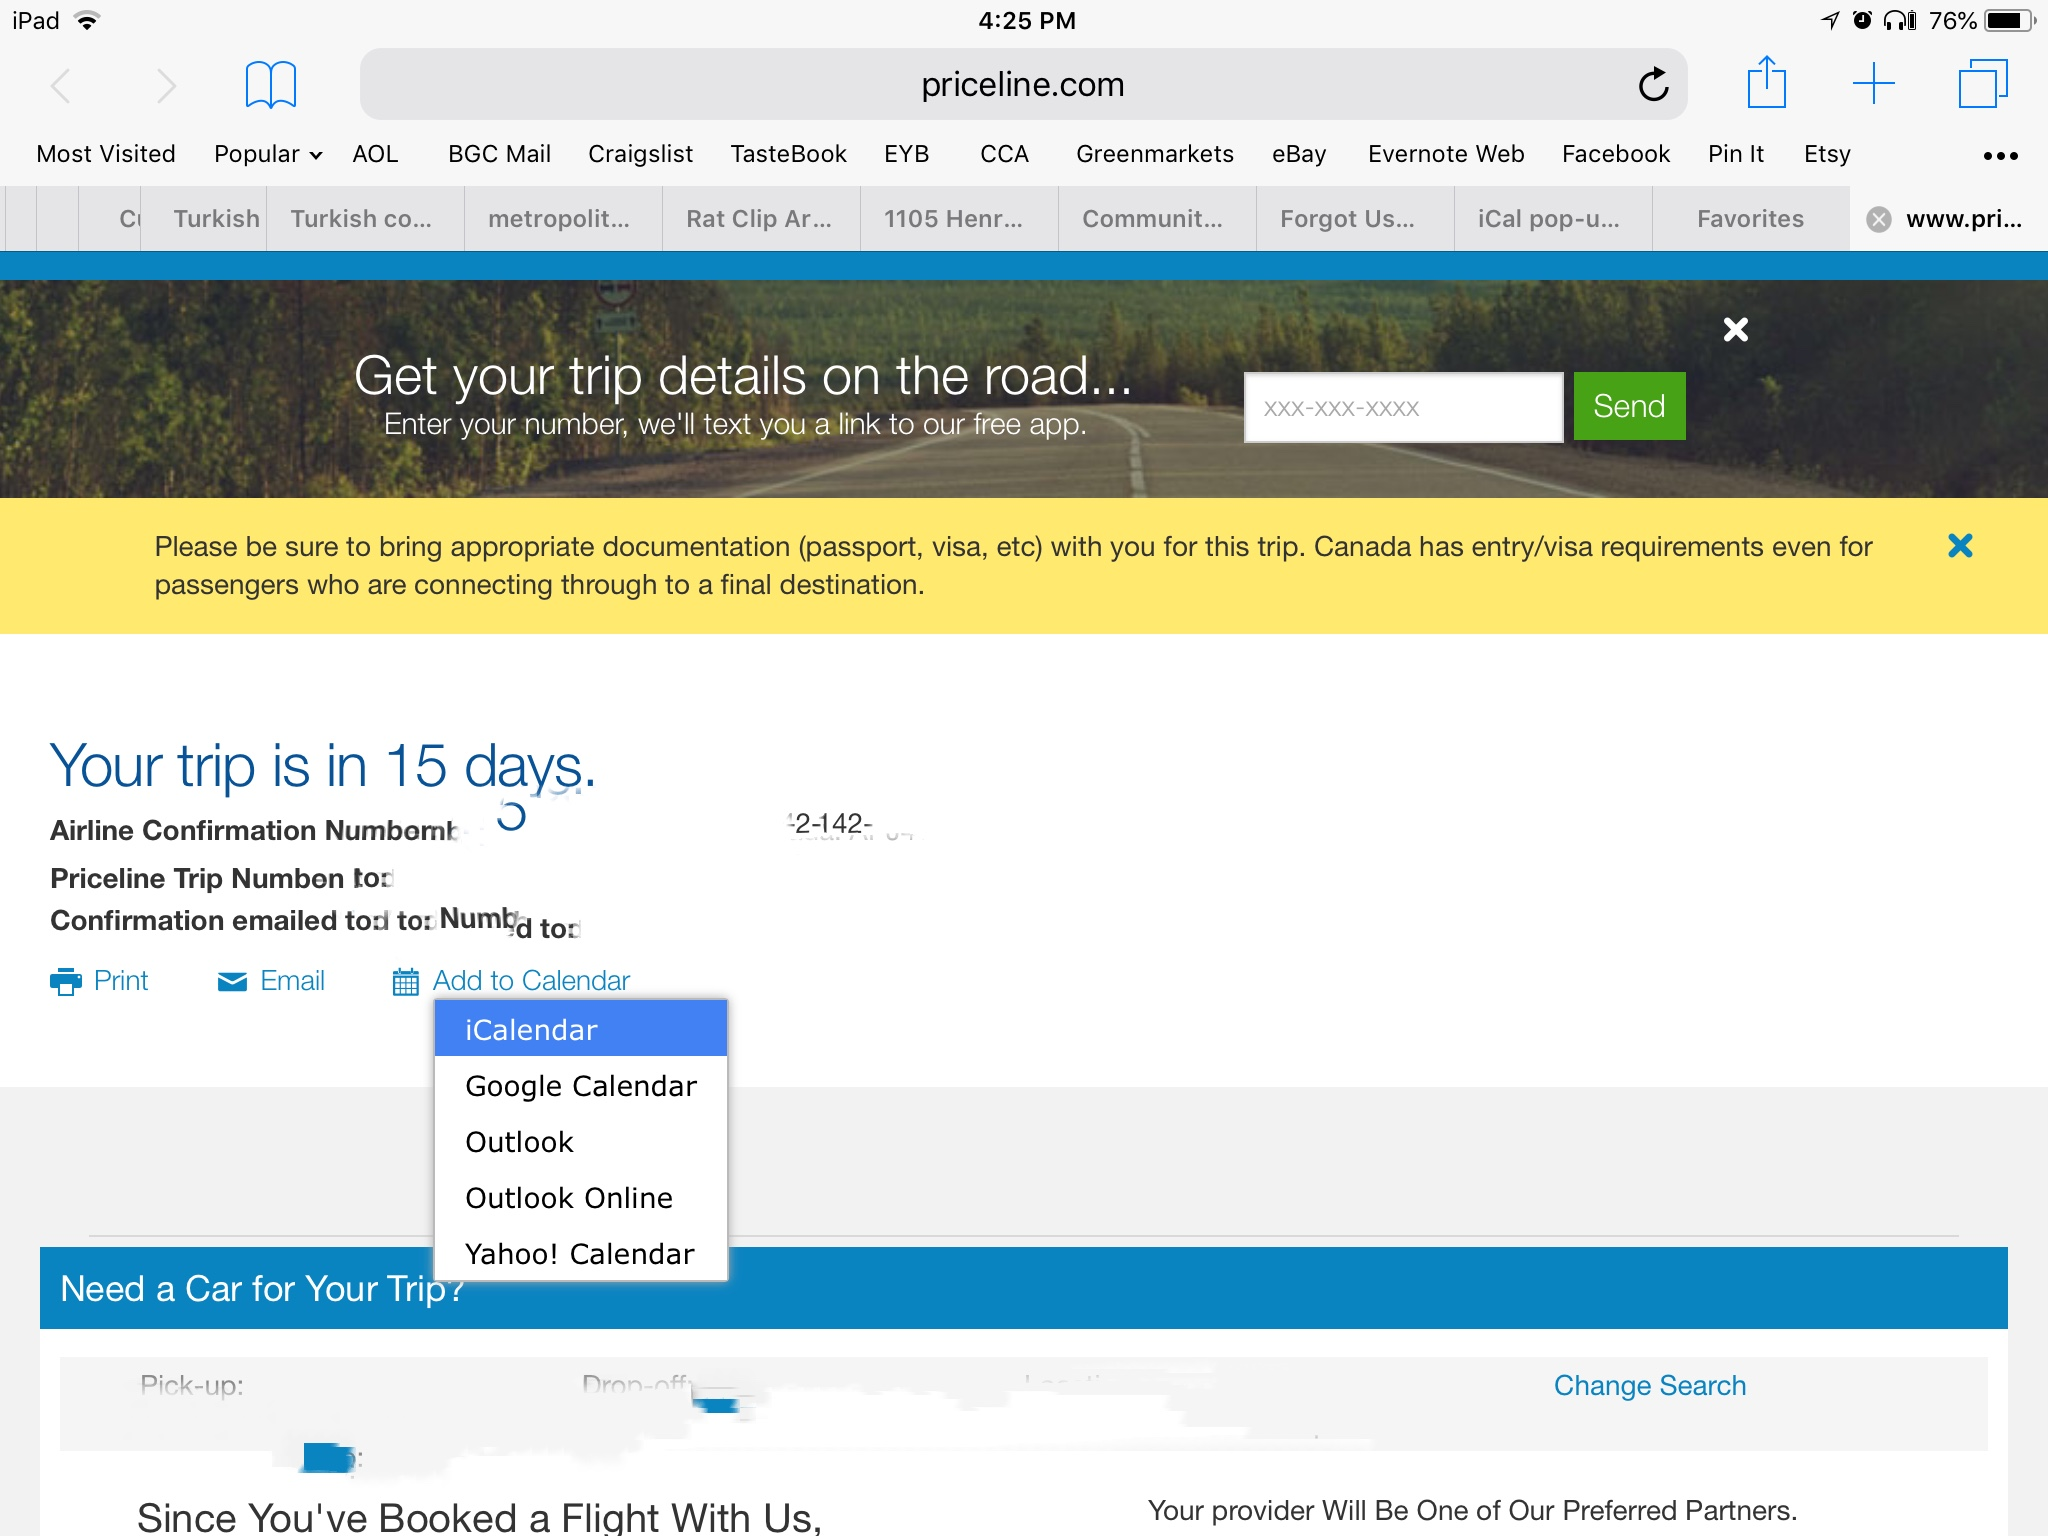 iCal pop-up window closes in Safari - Apple Community